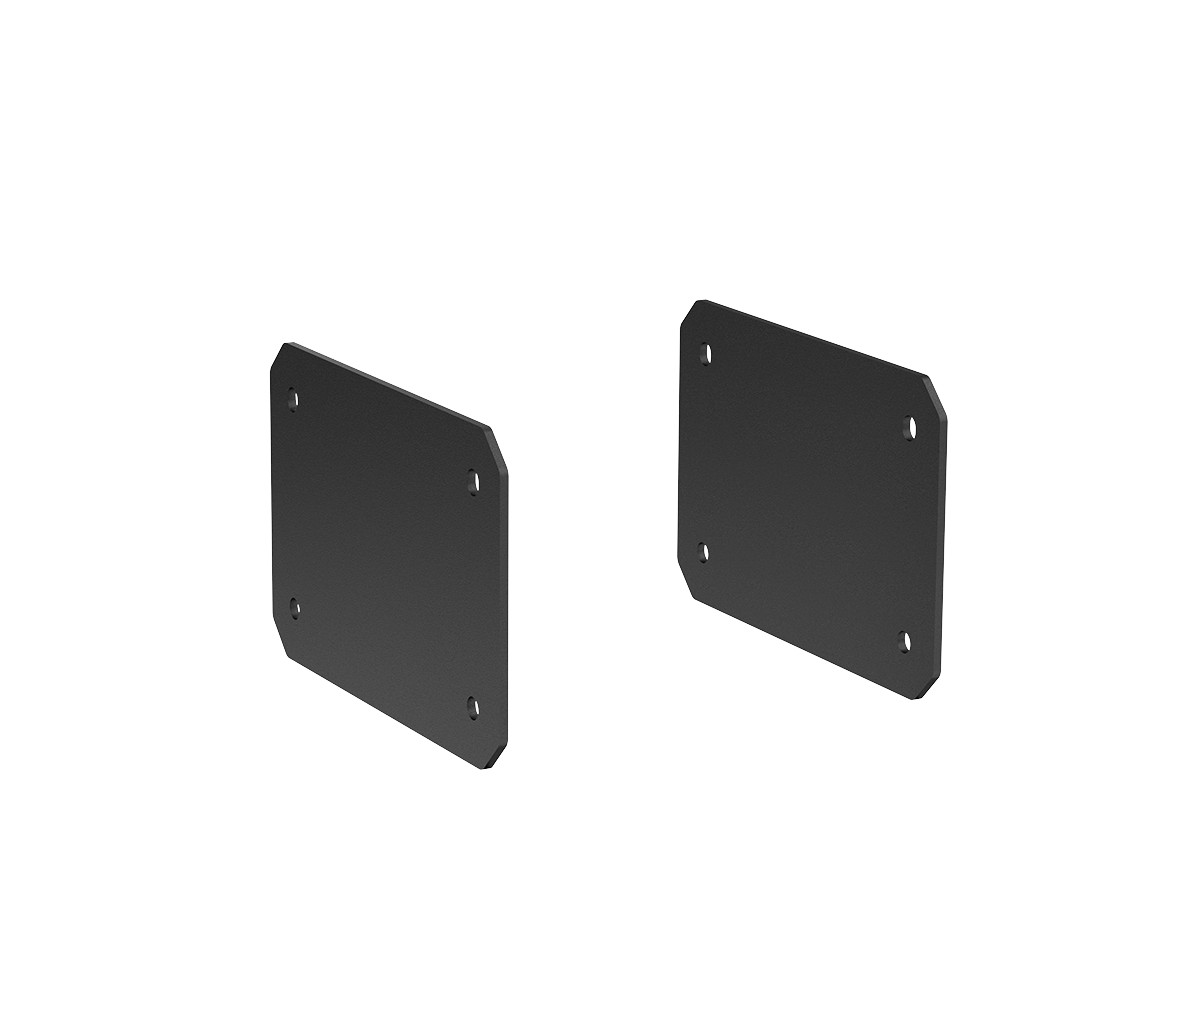 RMGSSB ground stack subwoofer brackets